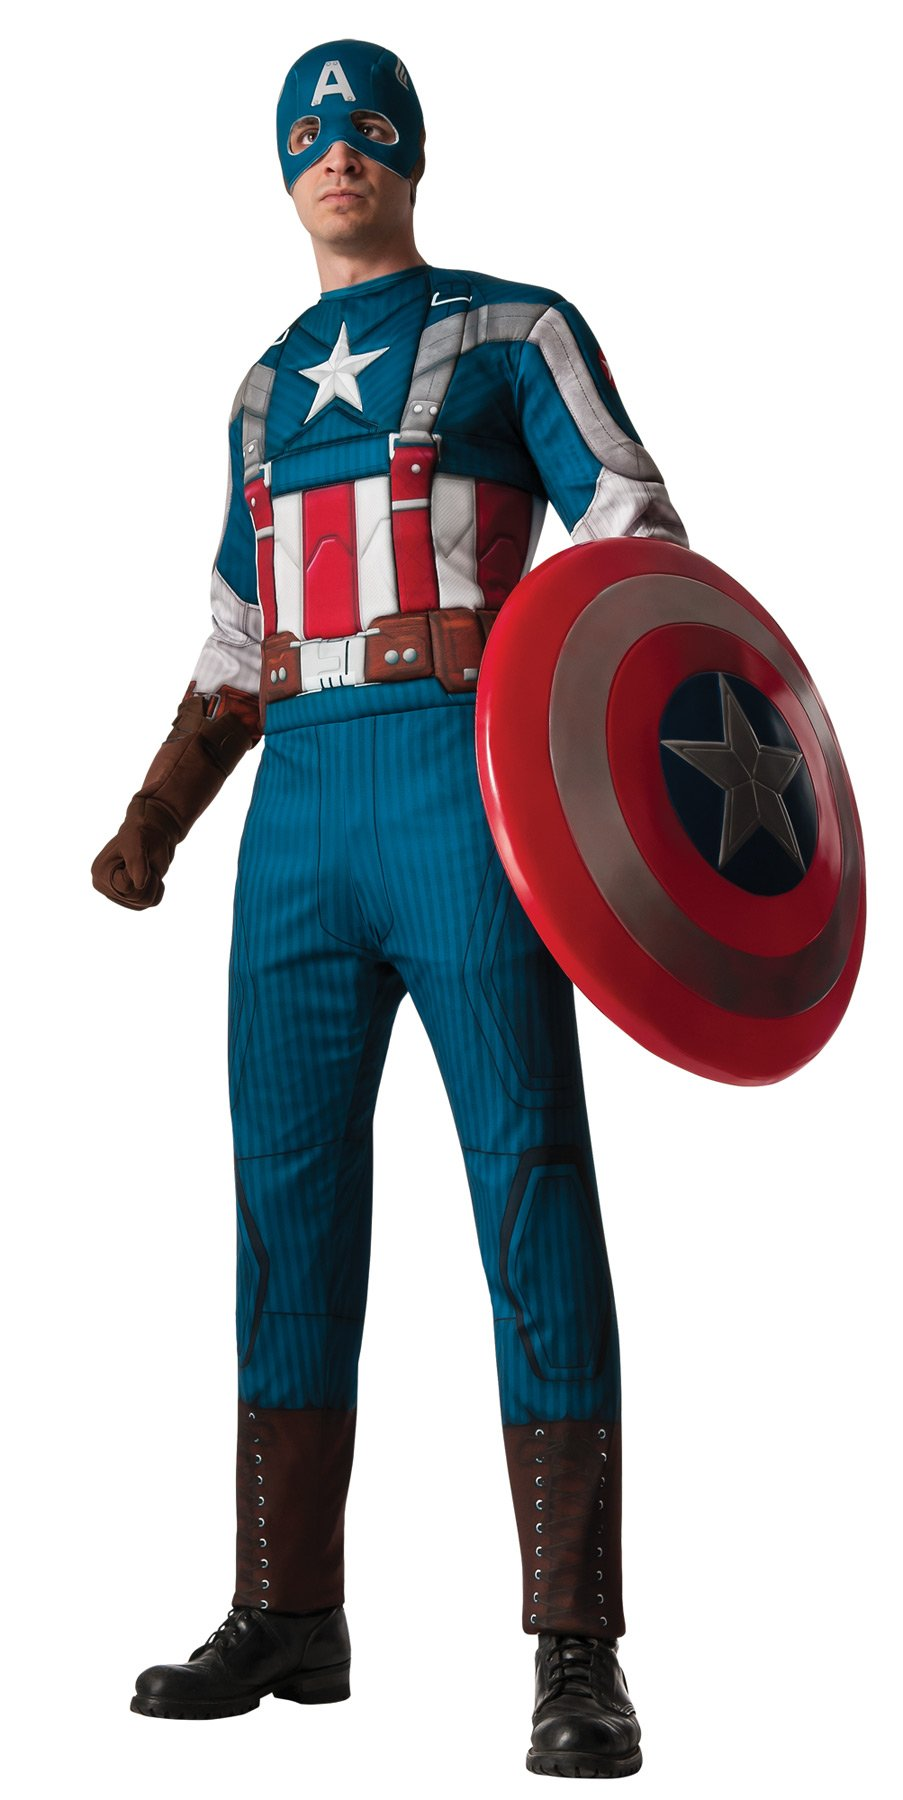 captain america retro adult costume xlarge | products | pinterest